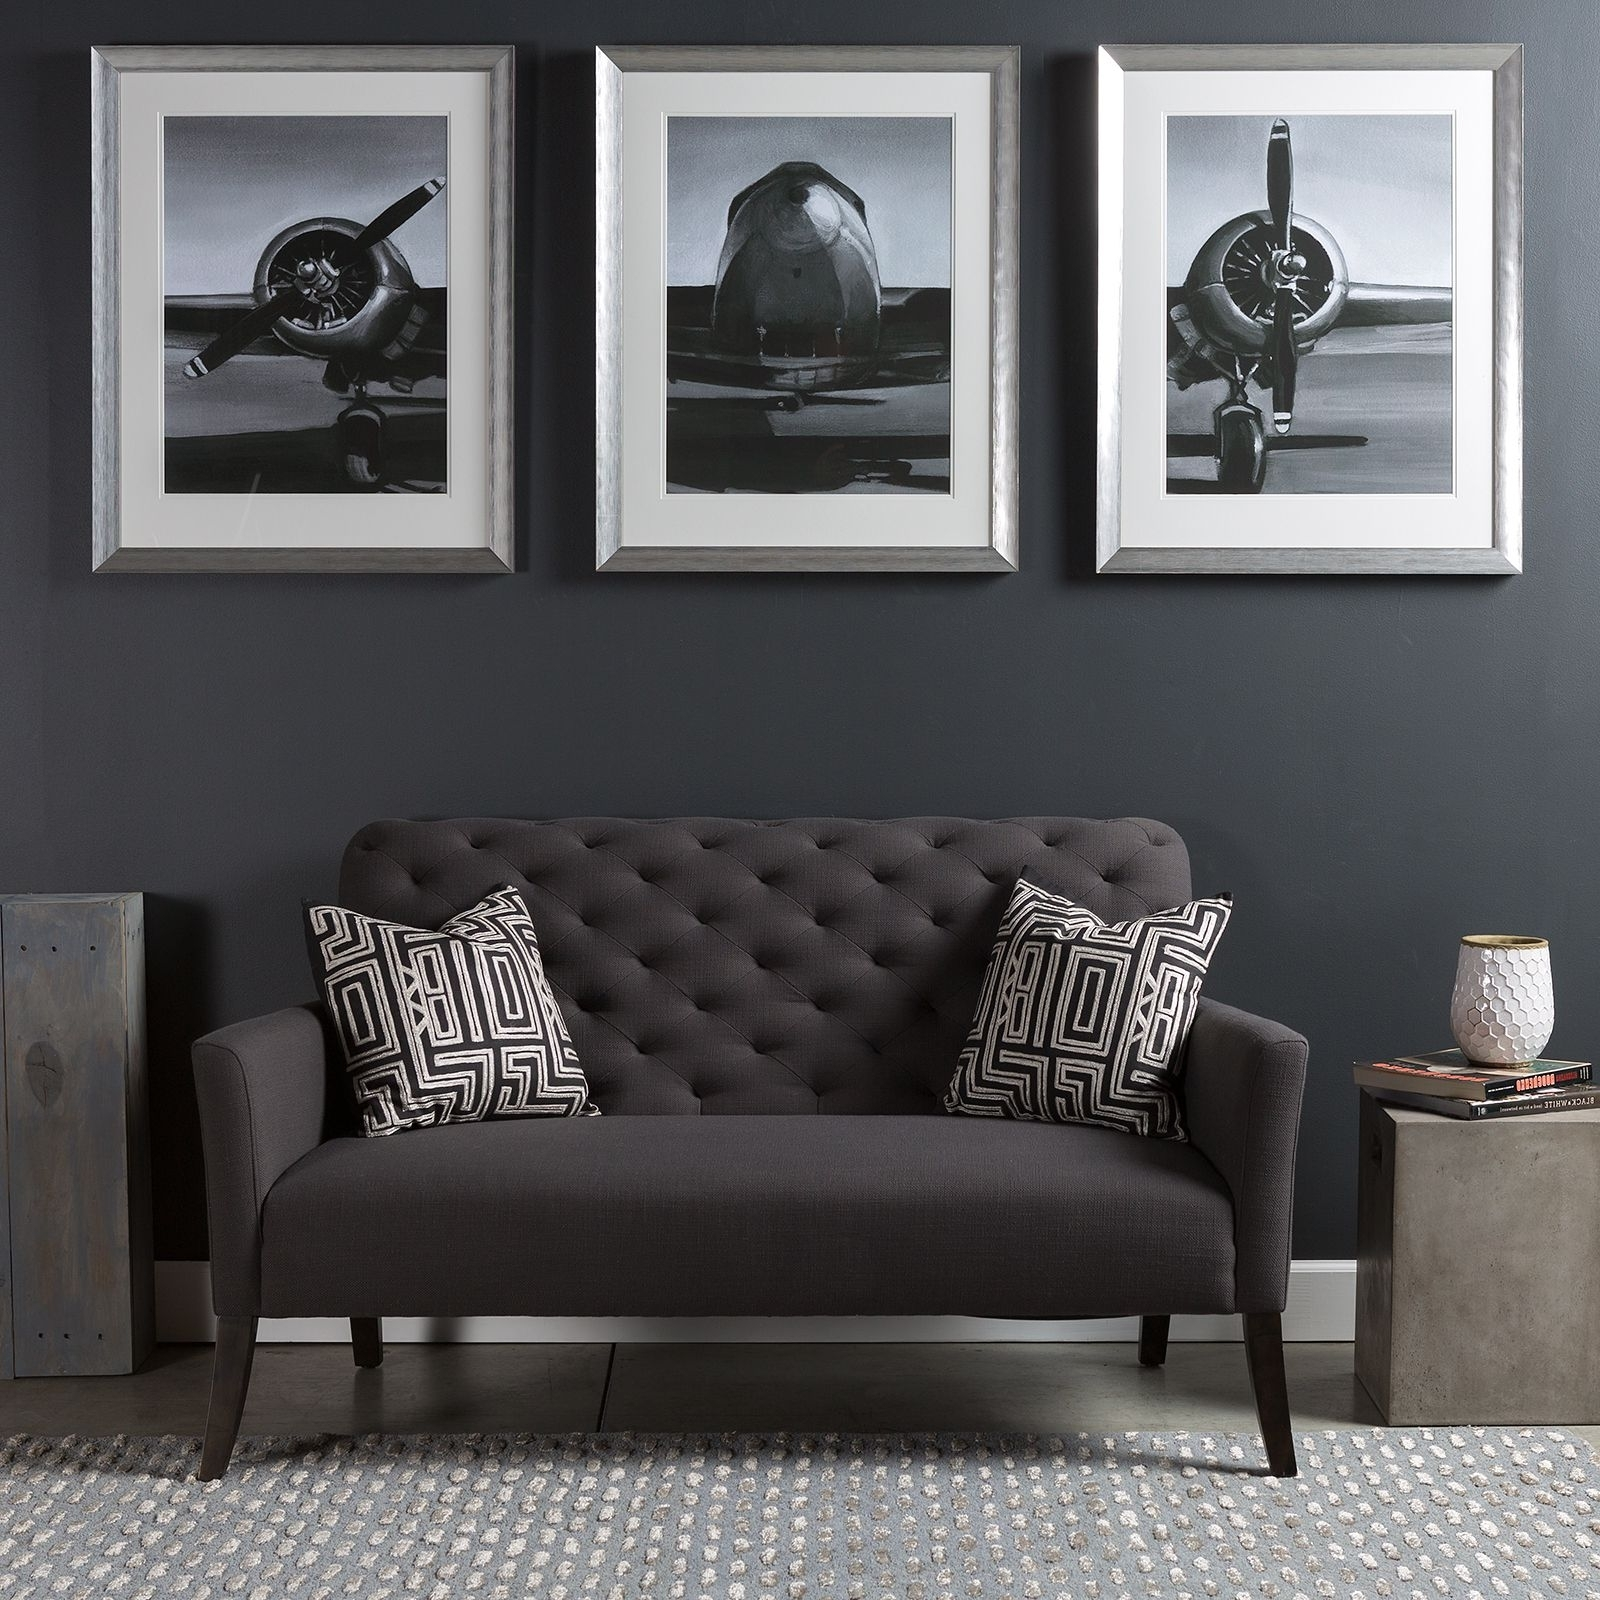 Triptych Wall Art Piece With A Modern Industrial Flare; A Series Of Pertaining To Famous Airplane Wall Art (View 14 of 15)